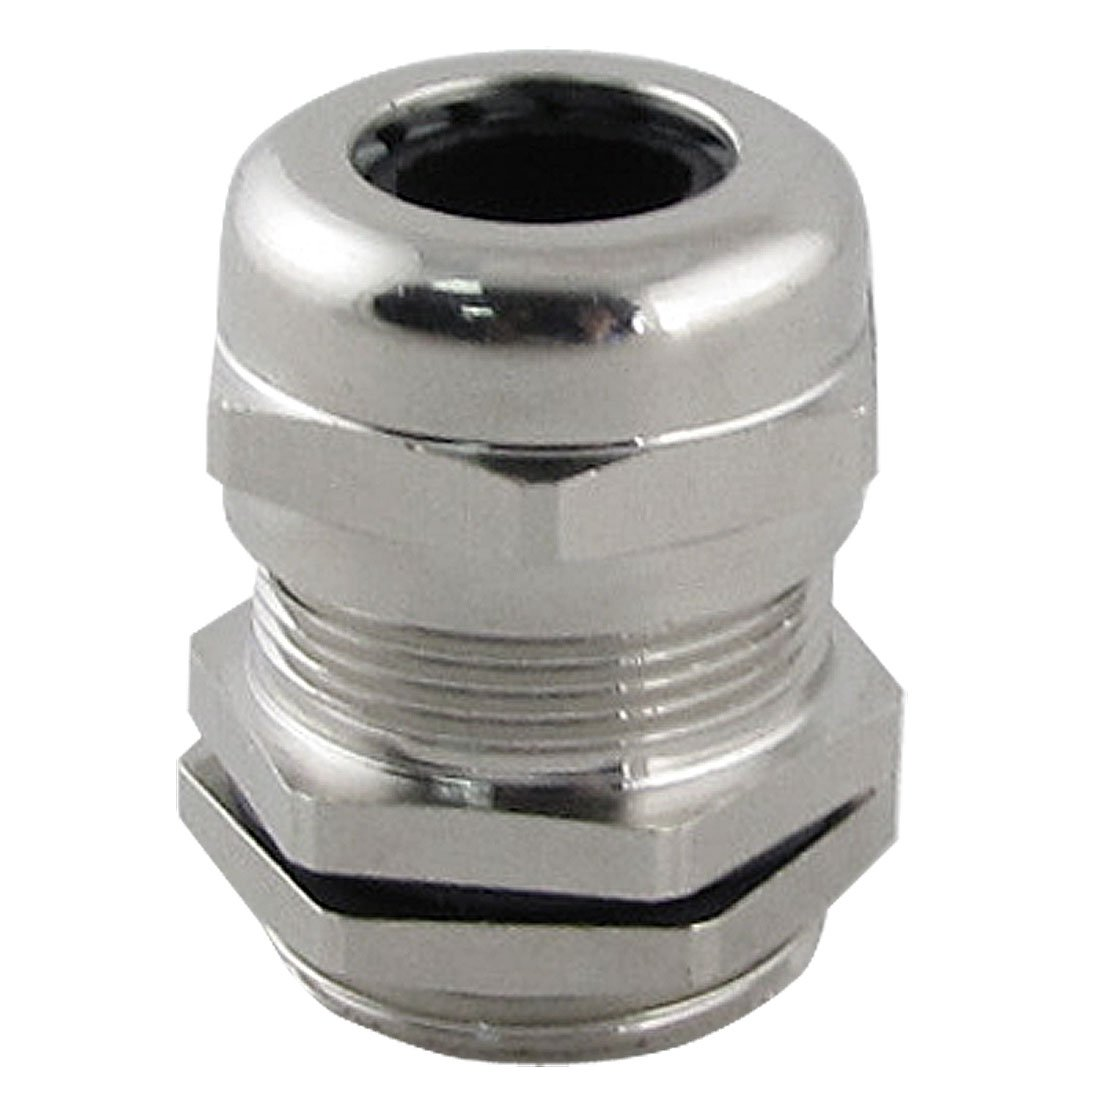 Uxcell a11110200ux0129 Stainless Steel 6.0-12.0mm M20 Cable Gland Connector with Locknut